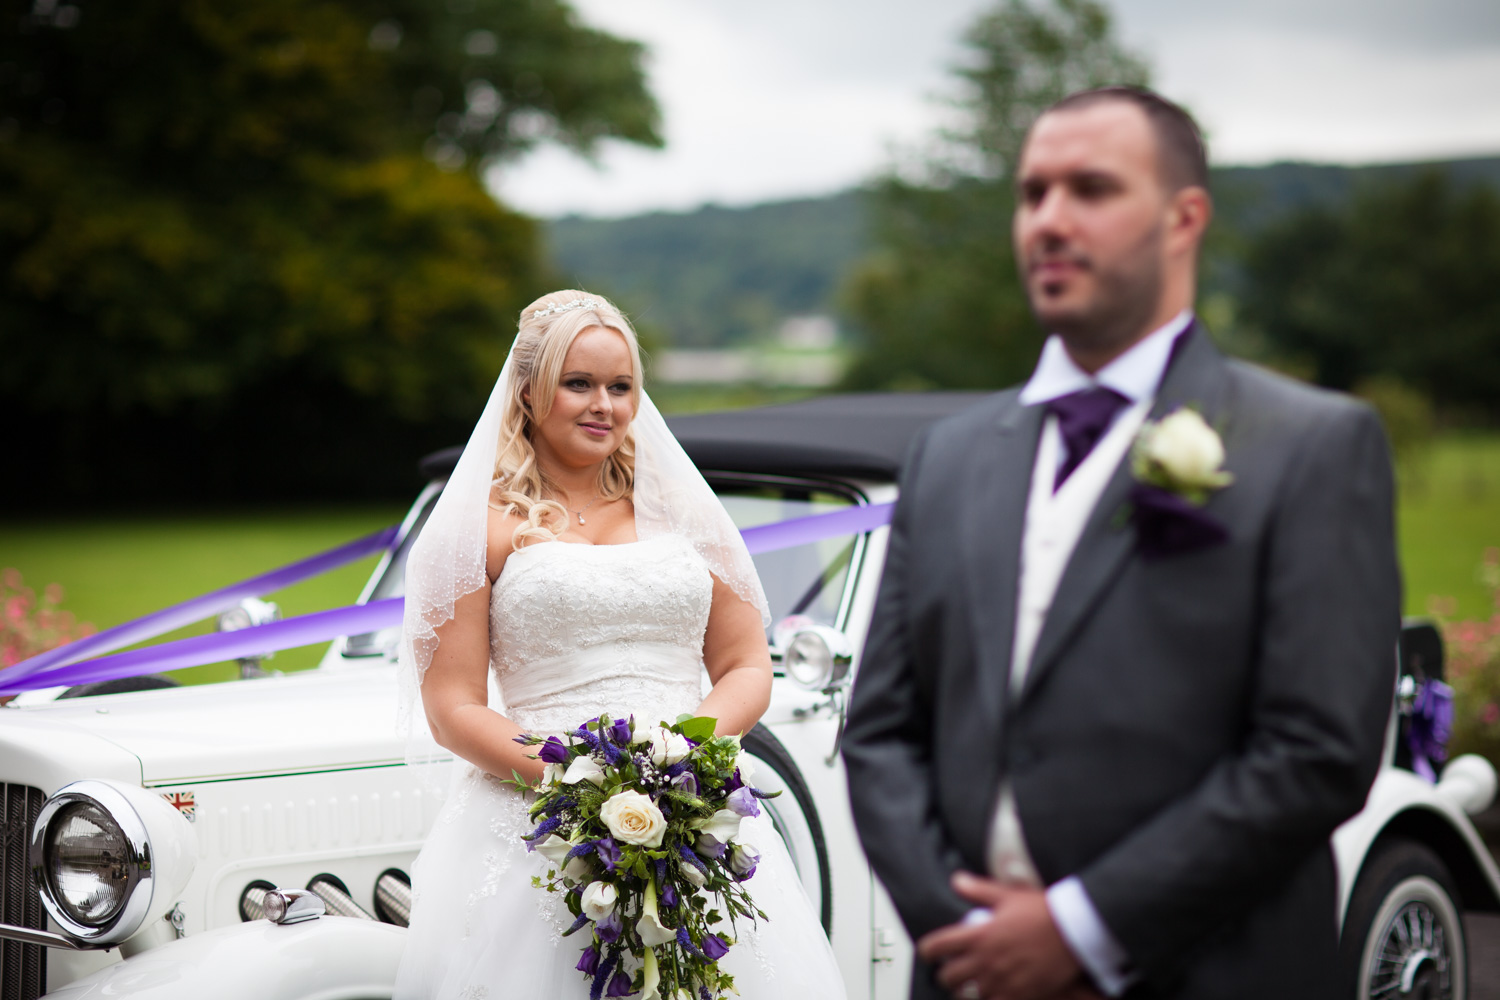 Mark_Barnes_Bristol-wedding-photography-aldwick-court-farm-and-vineyard-wedding-Photography-26.jpg